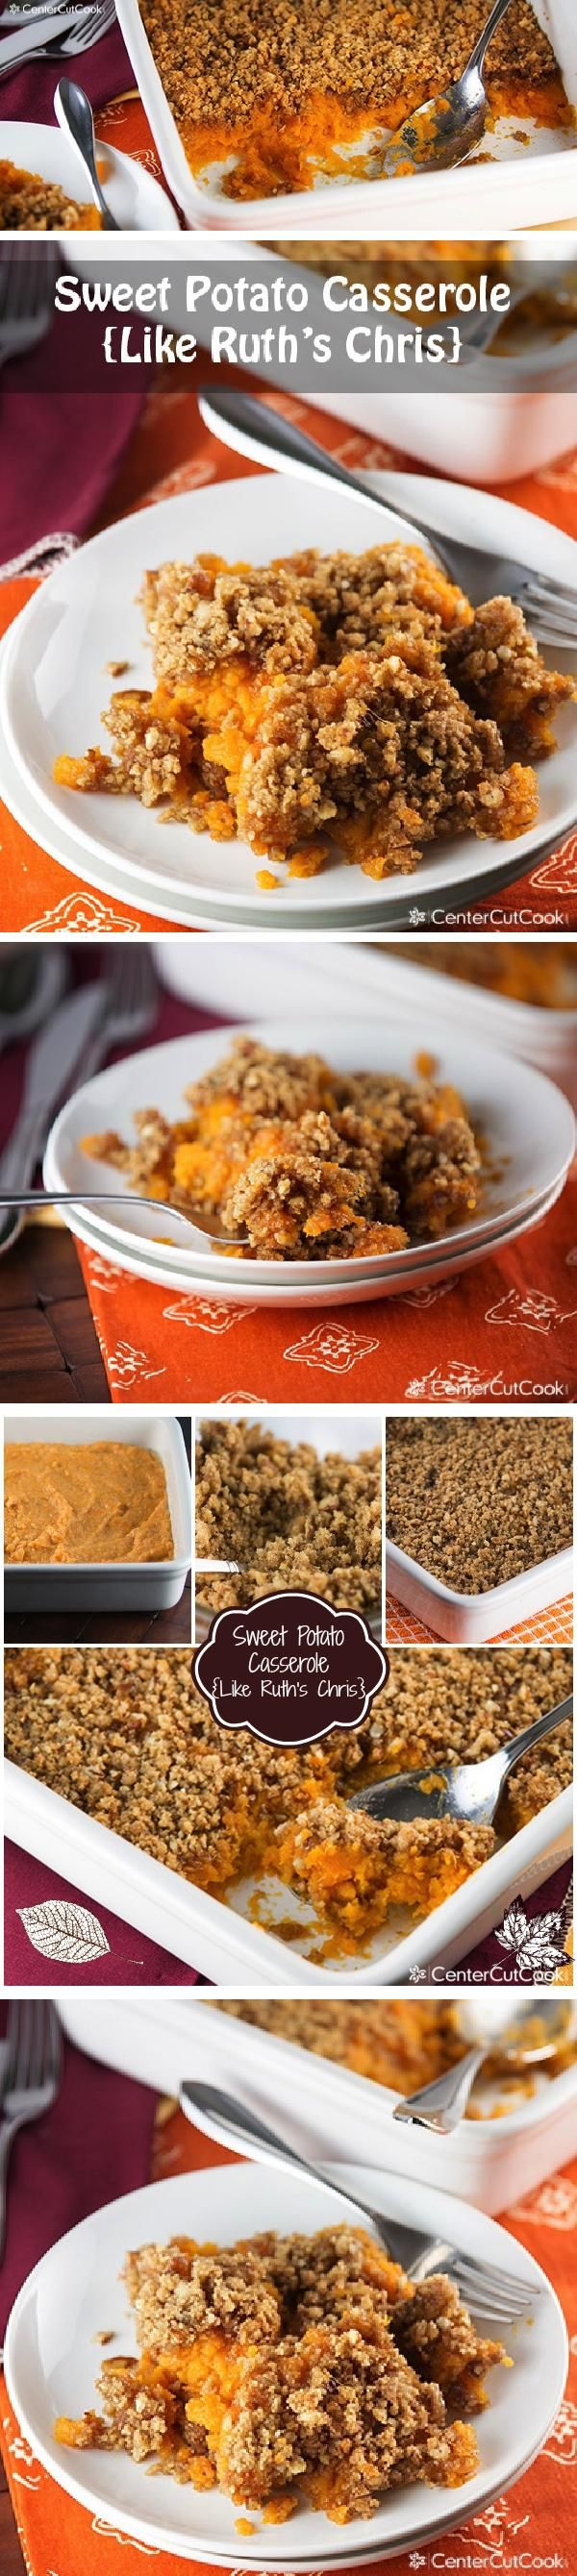 Penzeys recipes sweet potato casserole